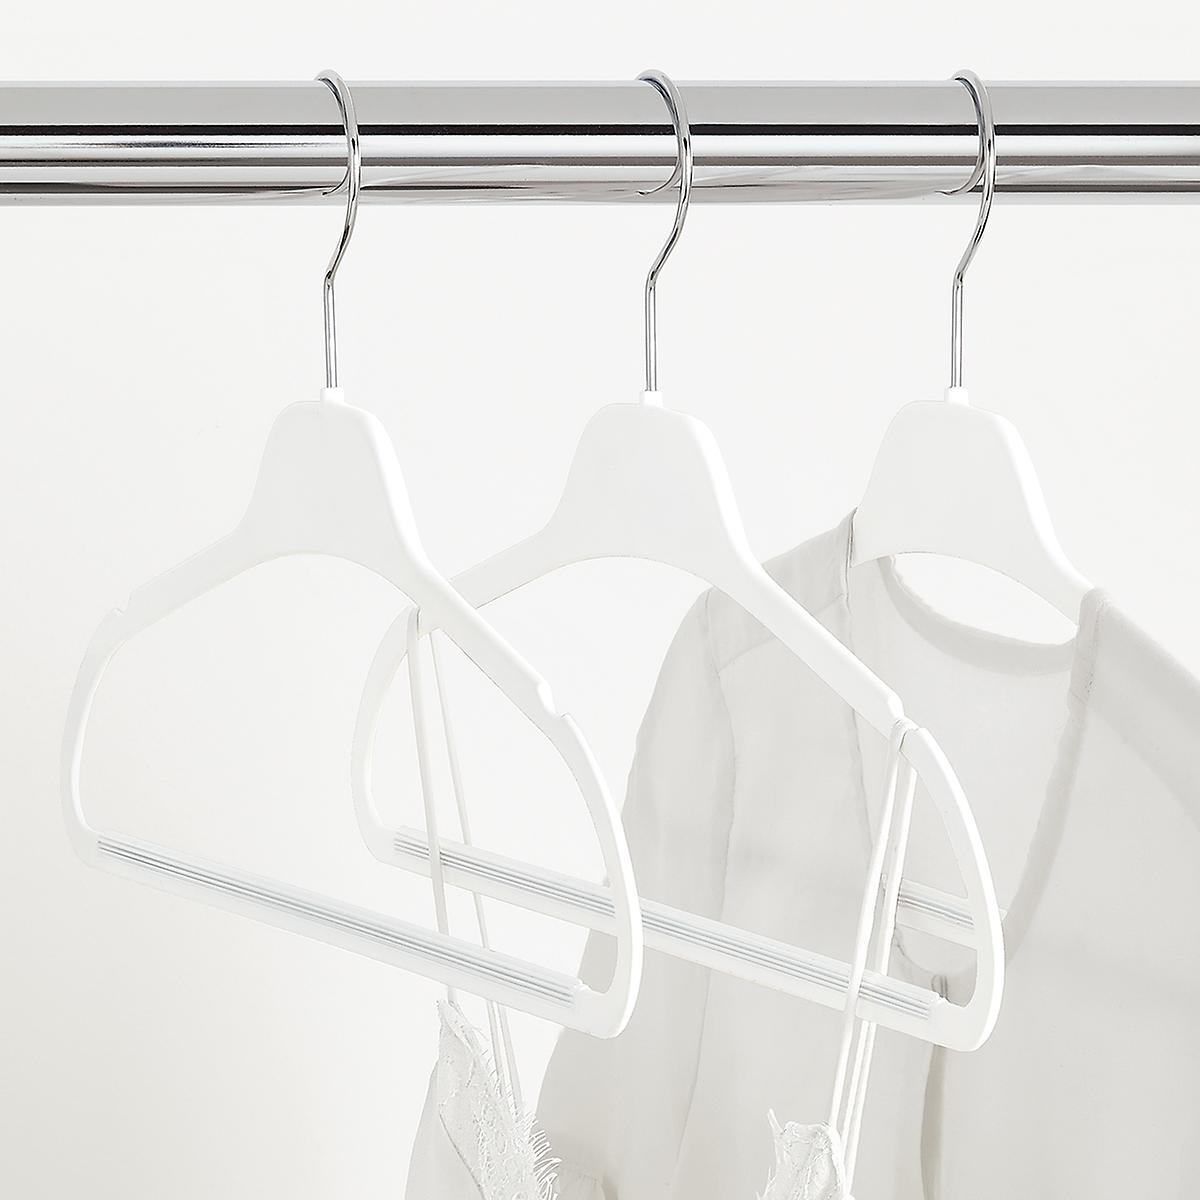 White Non-Slip Rubberized Suit Hangers Case of 120